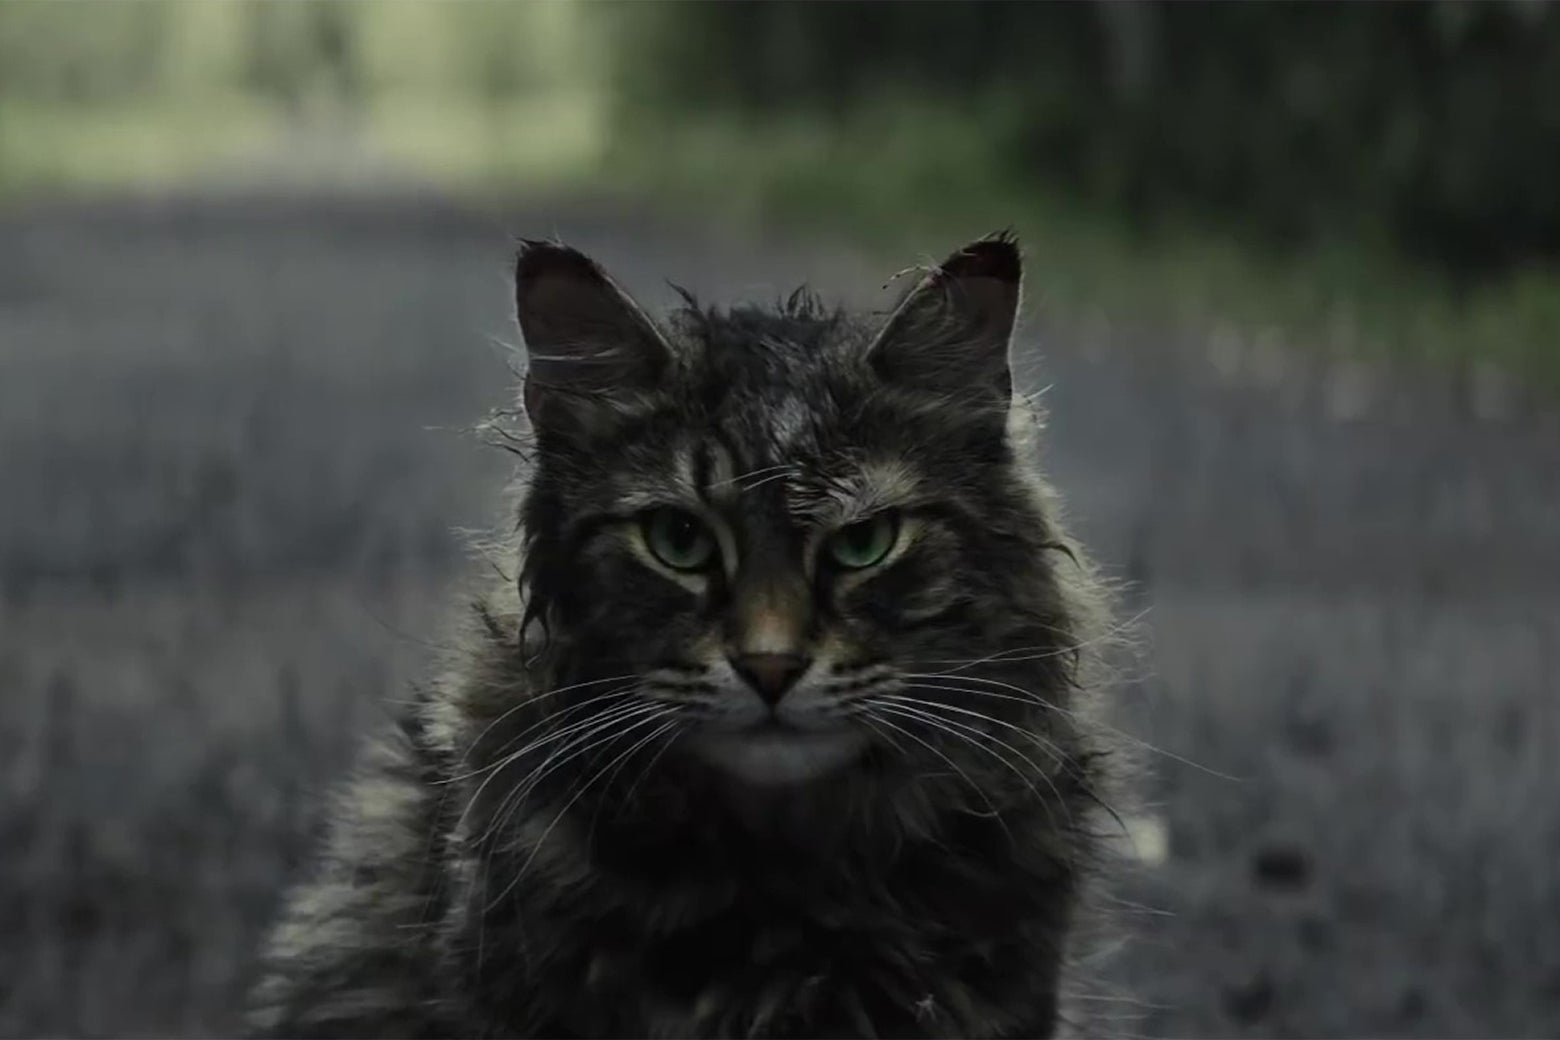 A disheveled-looking cat.